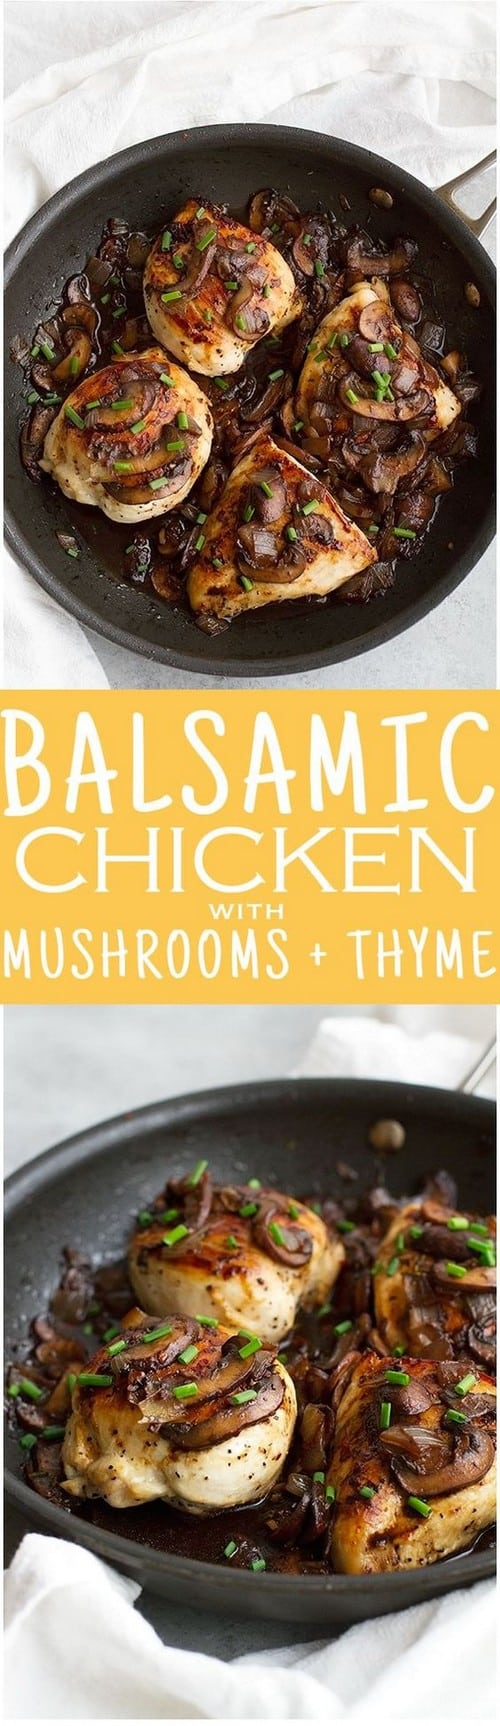 Mediterranean Balsamic Chicken with Mushrooms and Thyme